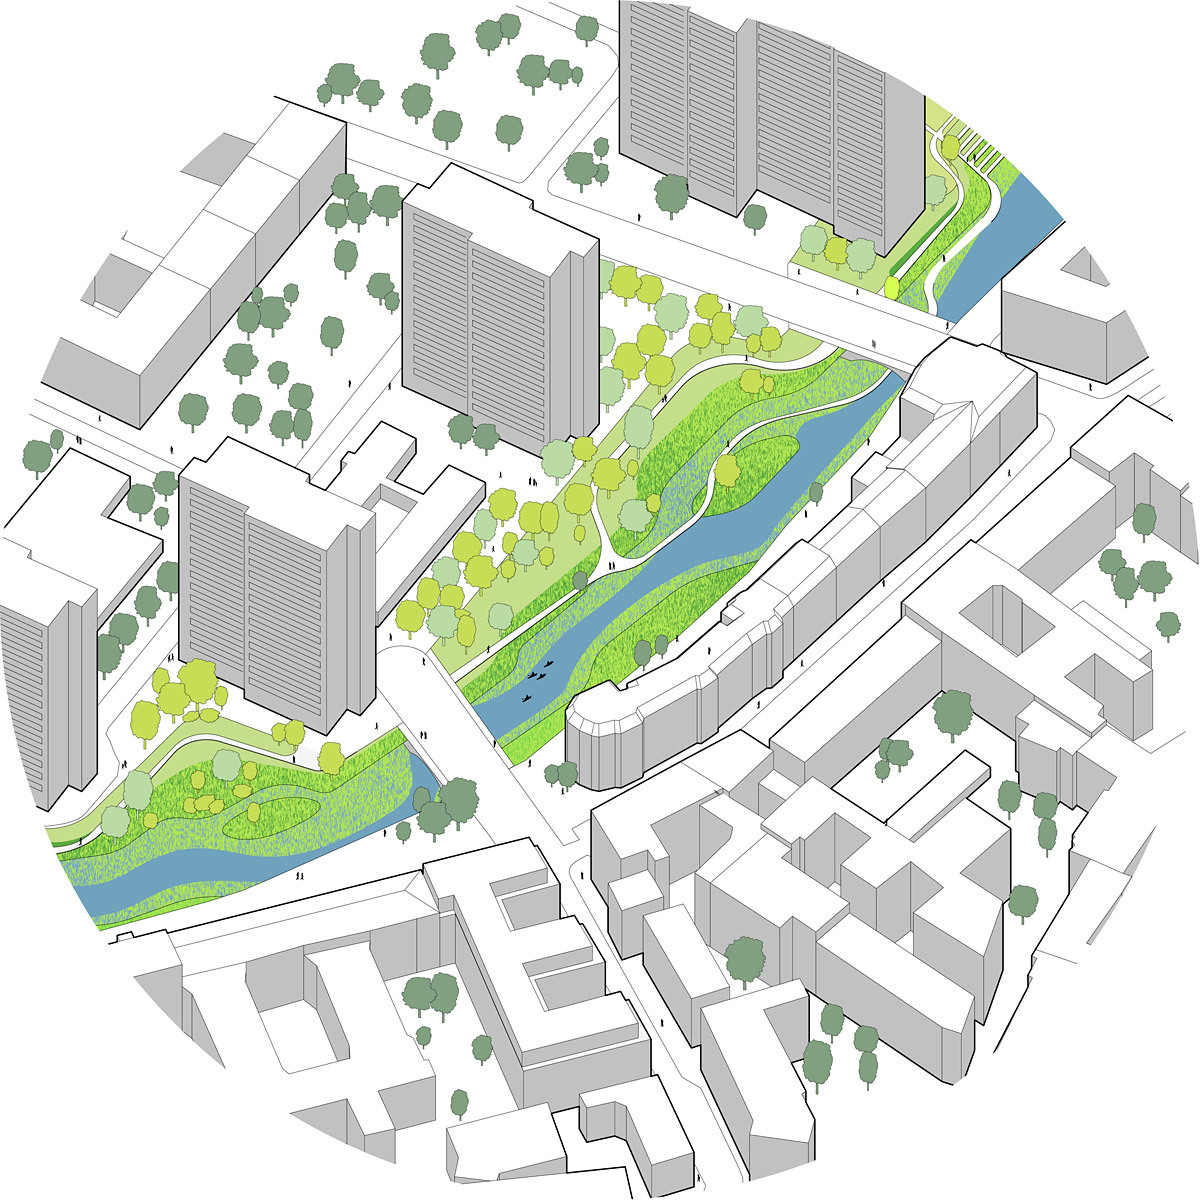 Global Holcim Awards Bronze 2012: Urban renewal and swimming-pool precinct, Berlin, Germany: Segment C: Isometric view of renaturized uppermost section of the river. (Image © Holcim Foundation)